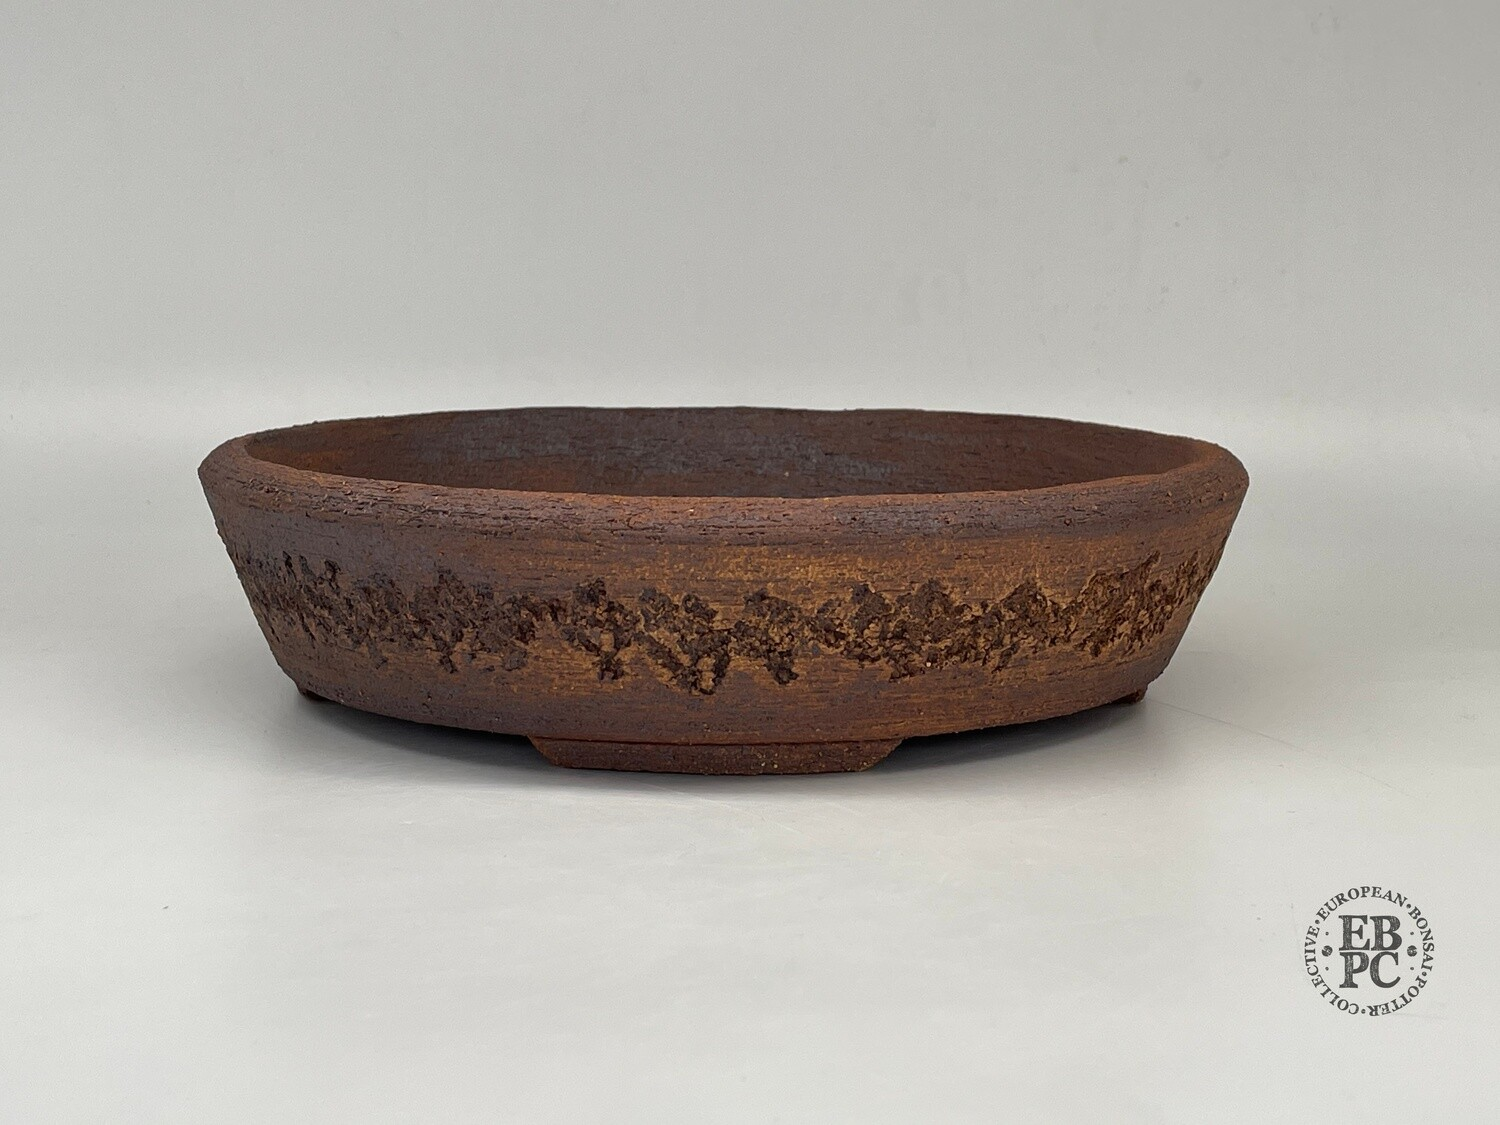 Dragonfly Bonsai Pots- 26.4cm; Unglazed; Round; Nanban; Browns; Greys; Reds; Natural Textures; Aged Finish